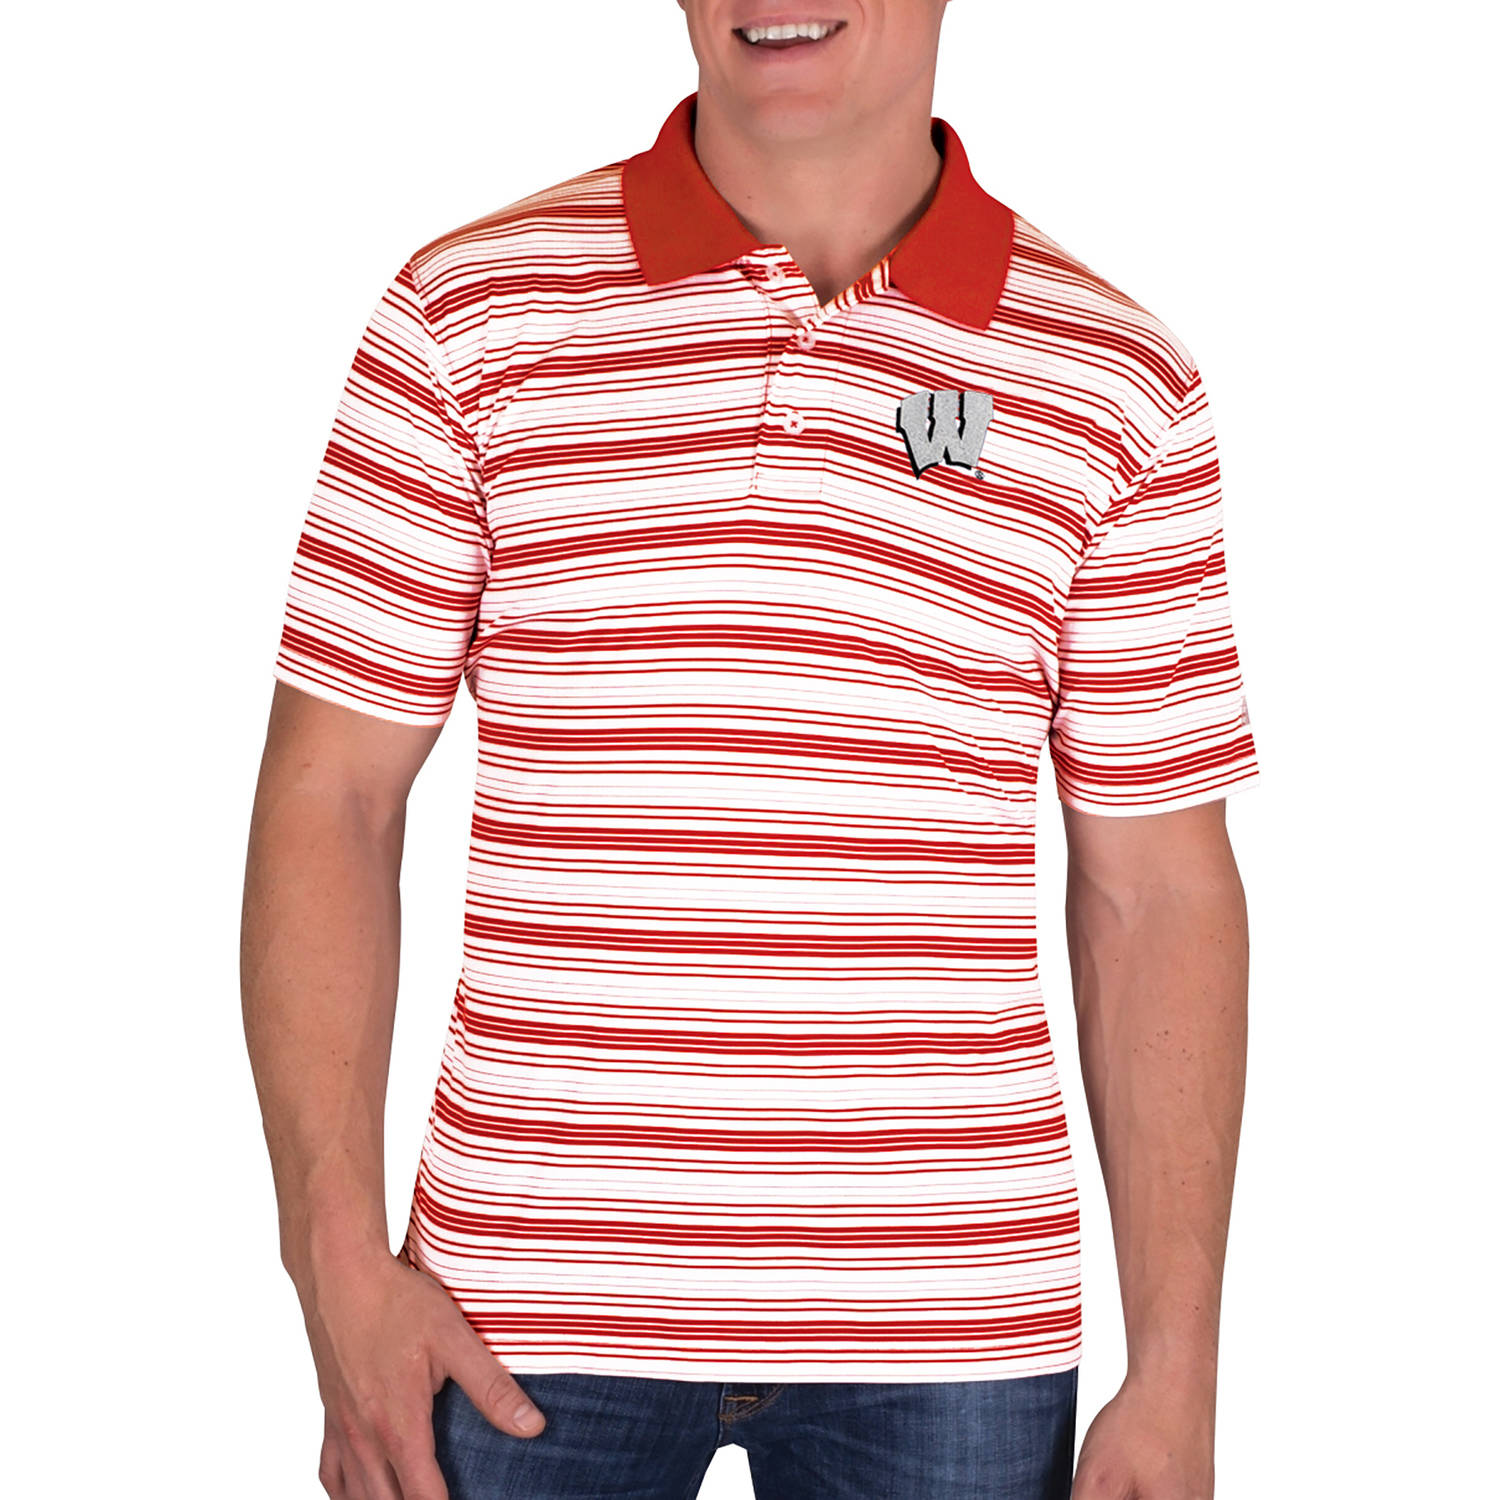 NCAA Wisconsin Badgers Men's Classic-Fit Striped Polo Shirt